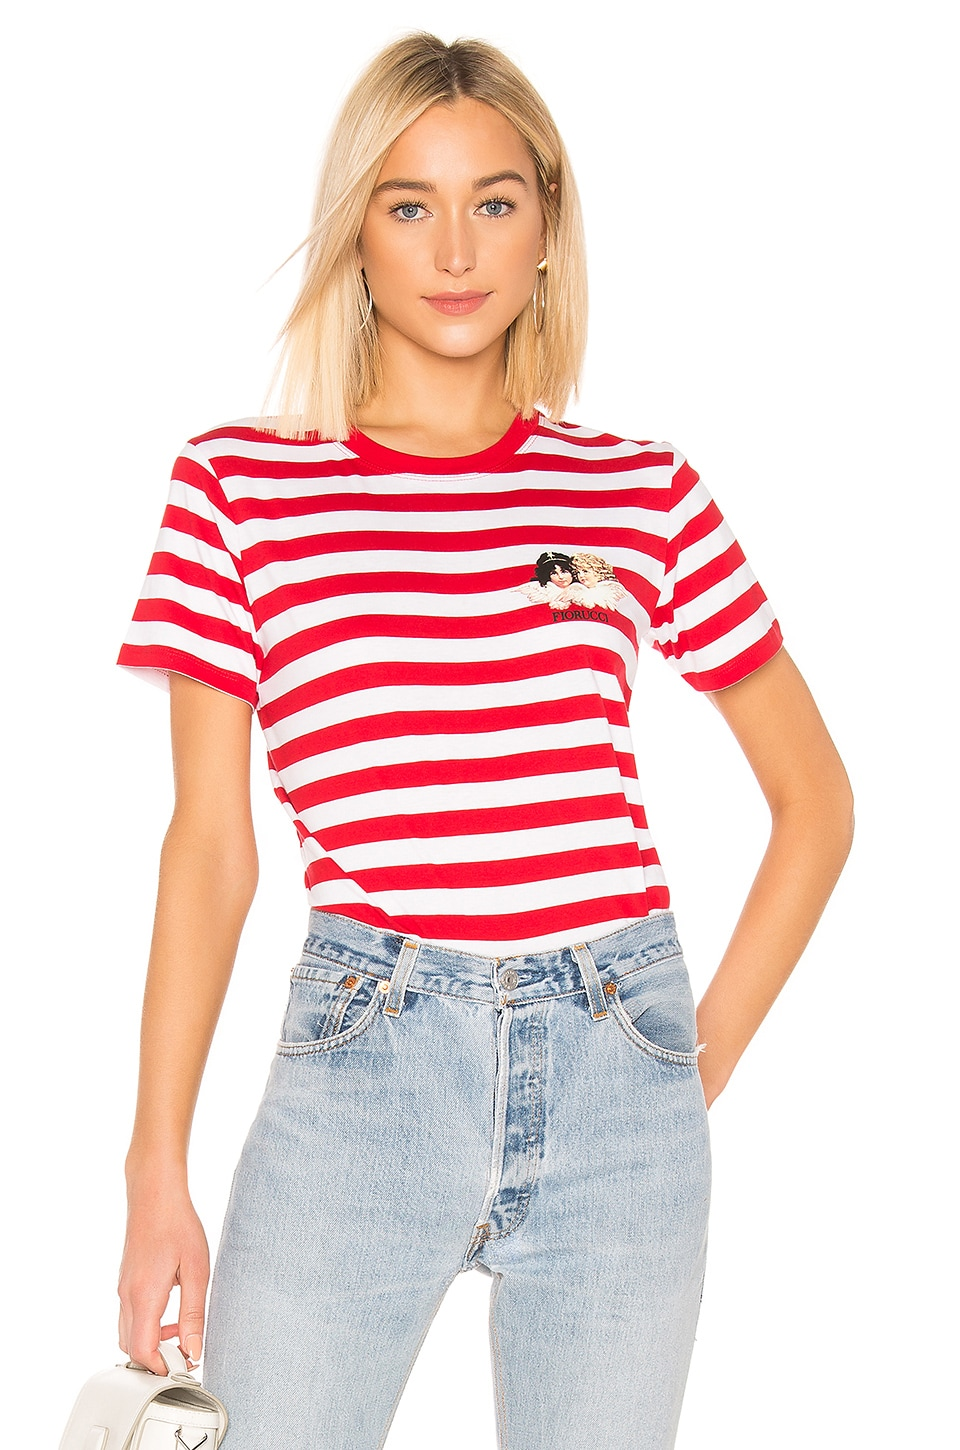 FIORUCCI Iconic Stripes Tee with Angels in Red & White